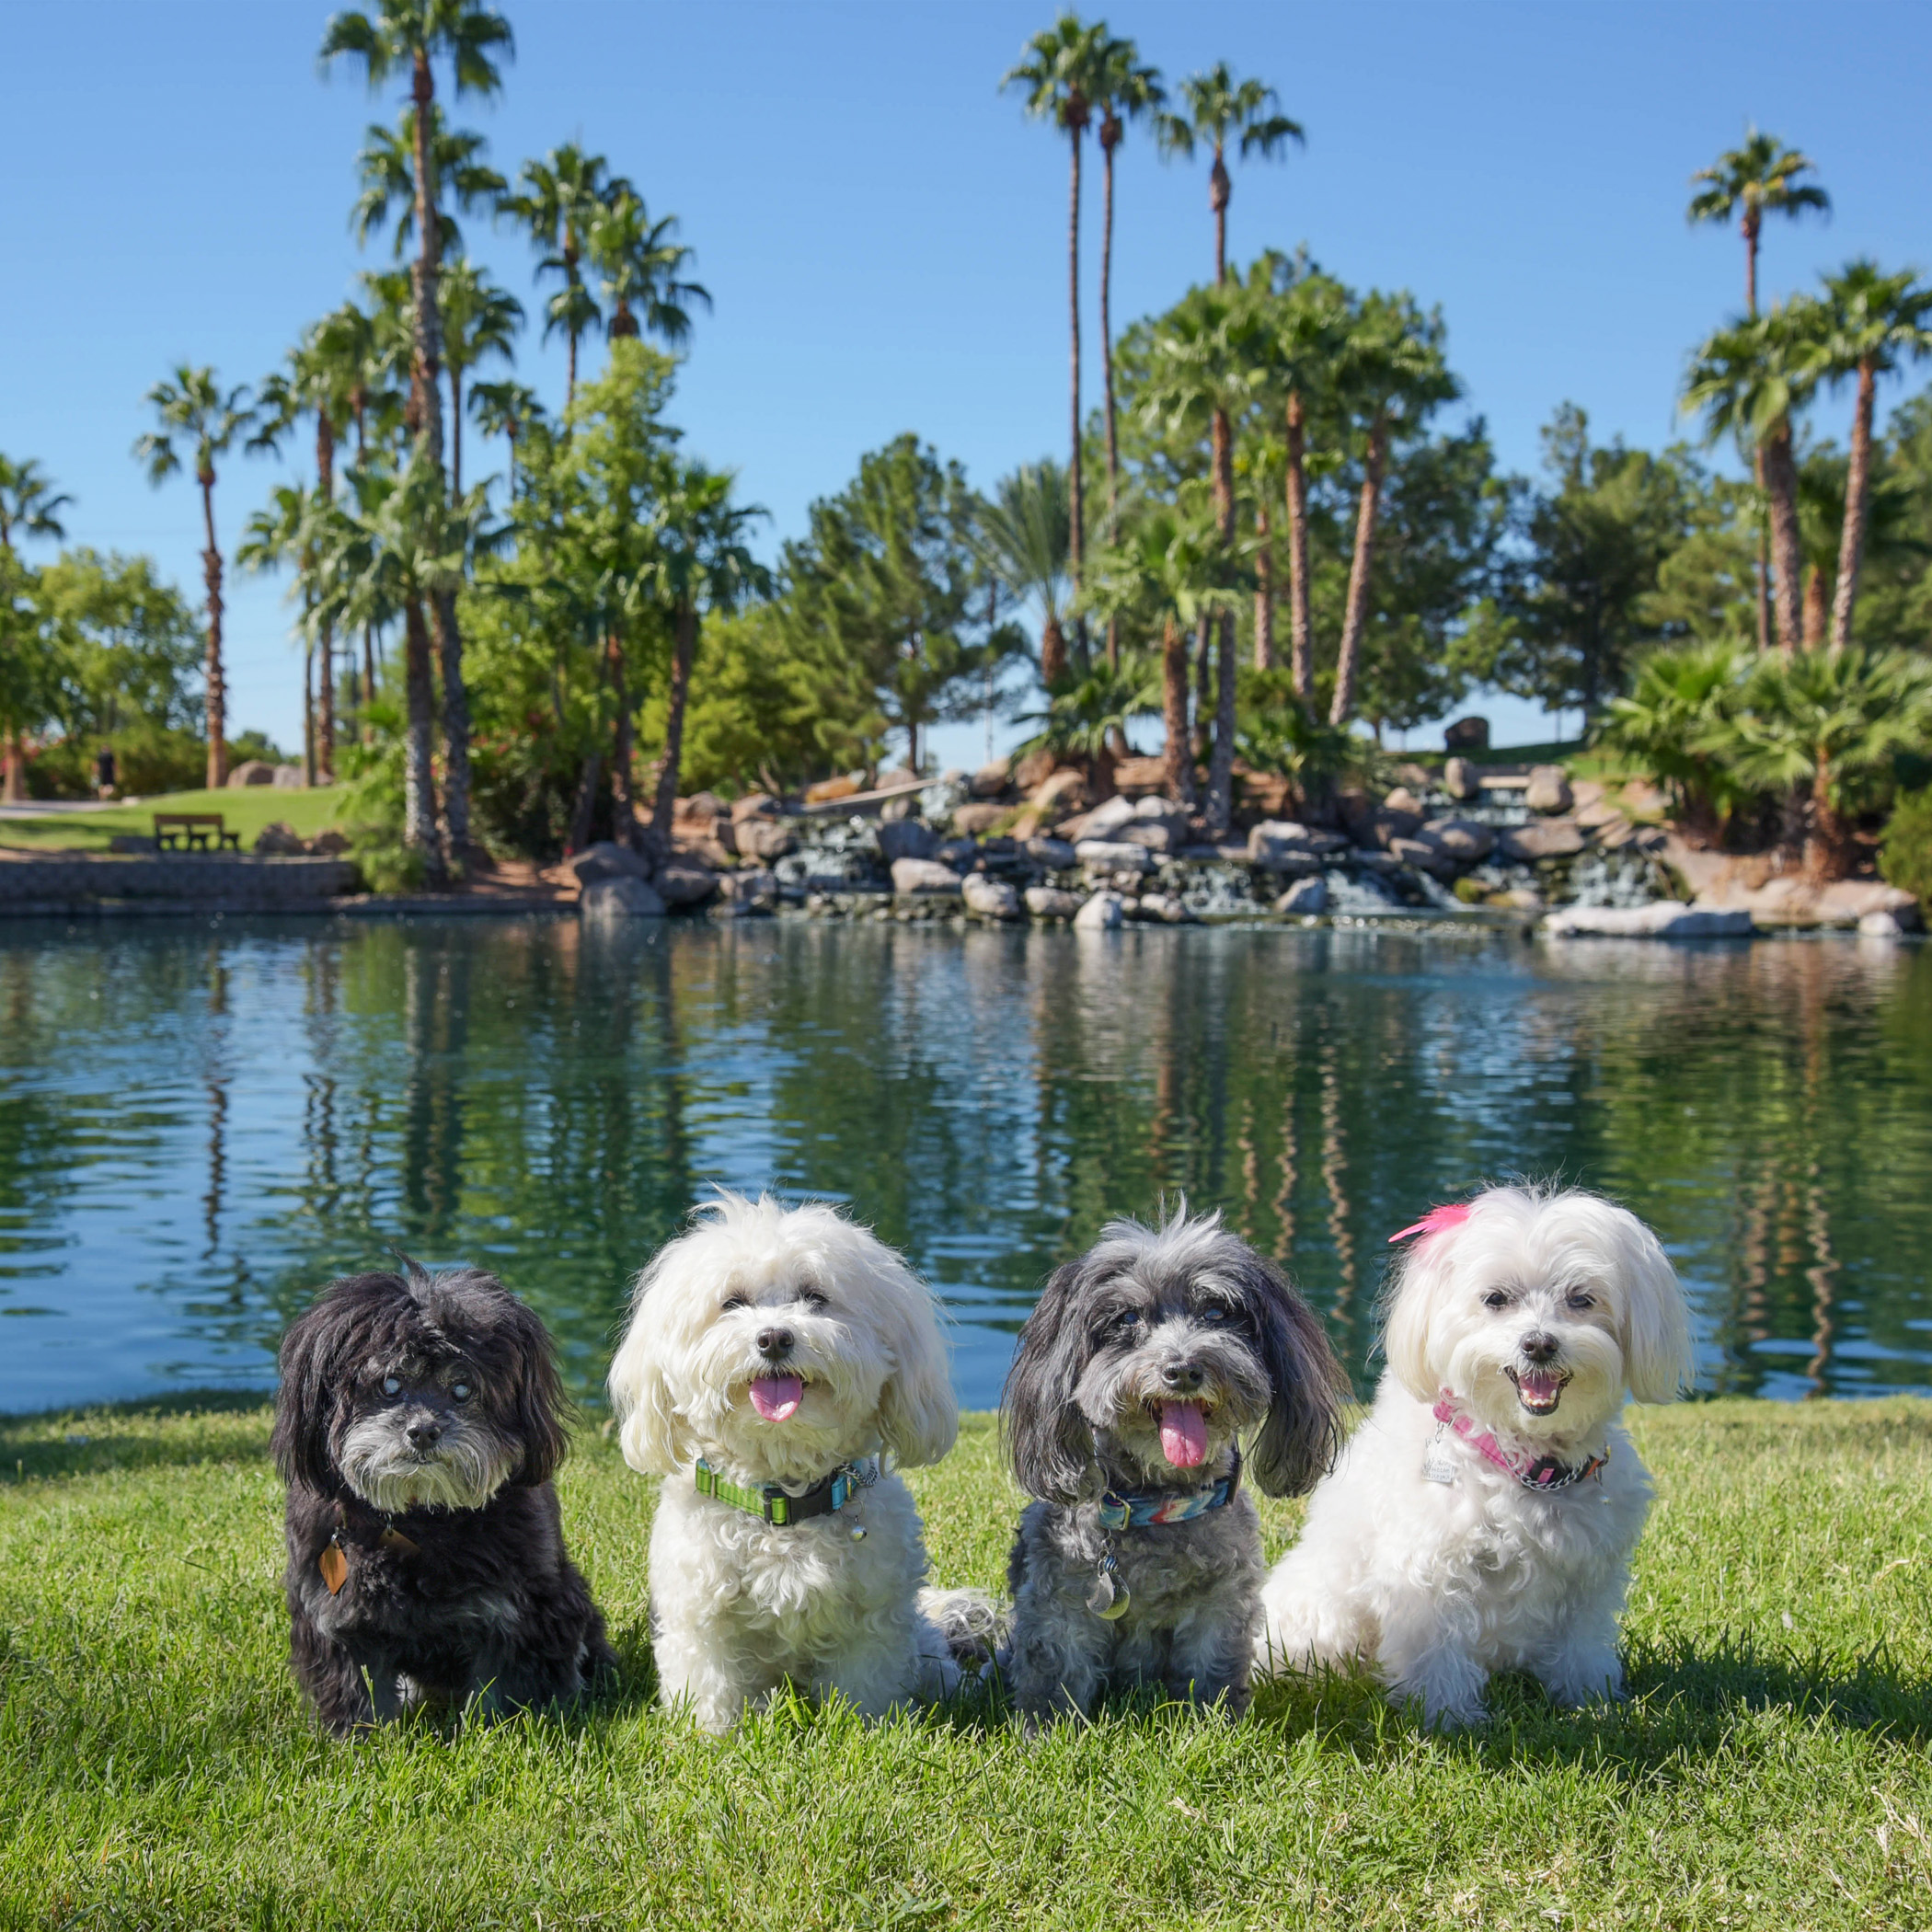 Doesn't it look like we are in paradise?!? We are so blessed to be able to experience such beauty and happiness! We wish and dream that every doggie in this big wide world will have the opportunity to experience something just as beautiful and be filled with as much joy for life and living as we have. Every day and every dollar gets us just a little closer to that dream…one day there will be a day when dogs and cats are no longer killed in shelters. Hugs and Kisses to all our supporters, donators and friends who want to see this dream become a reality!